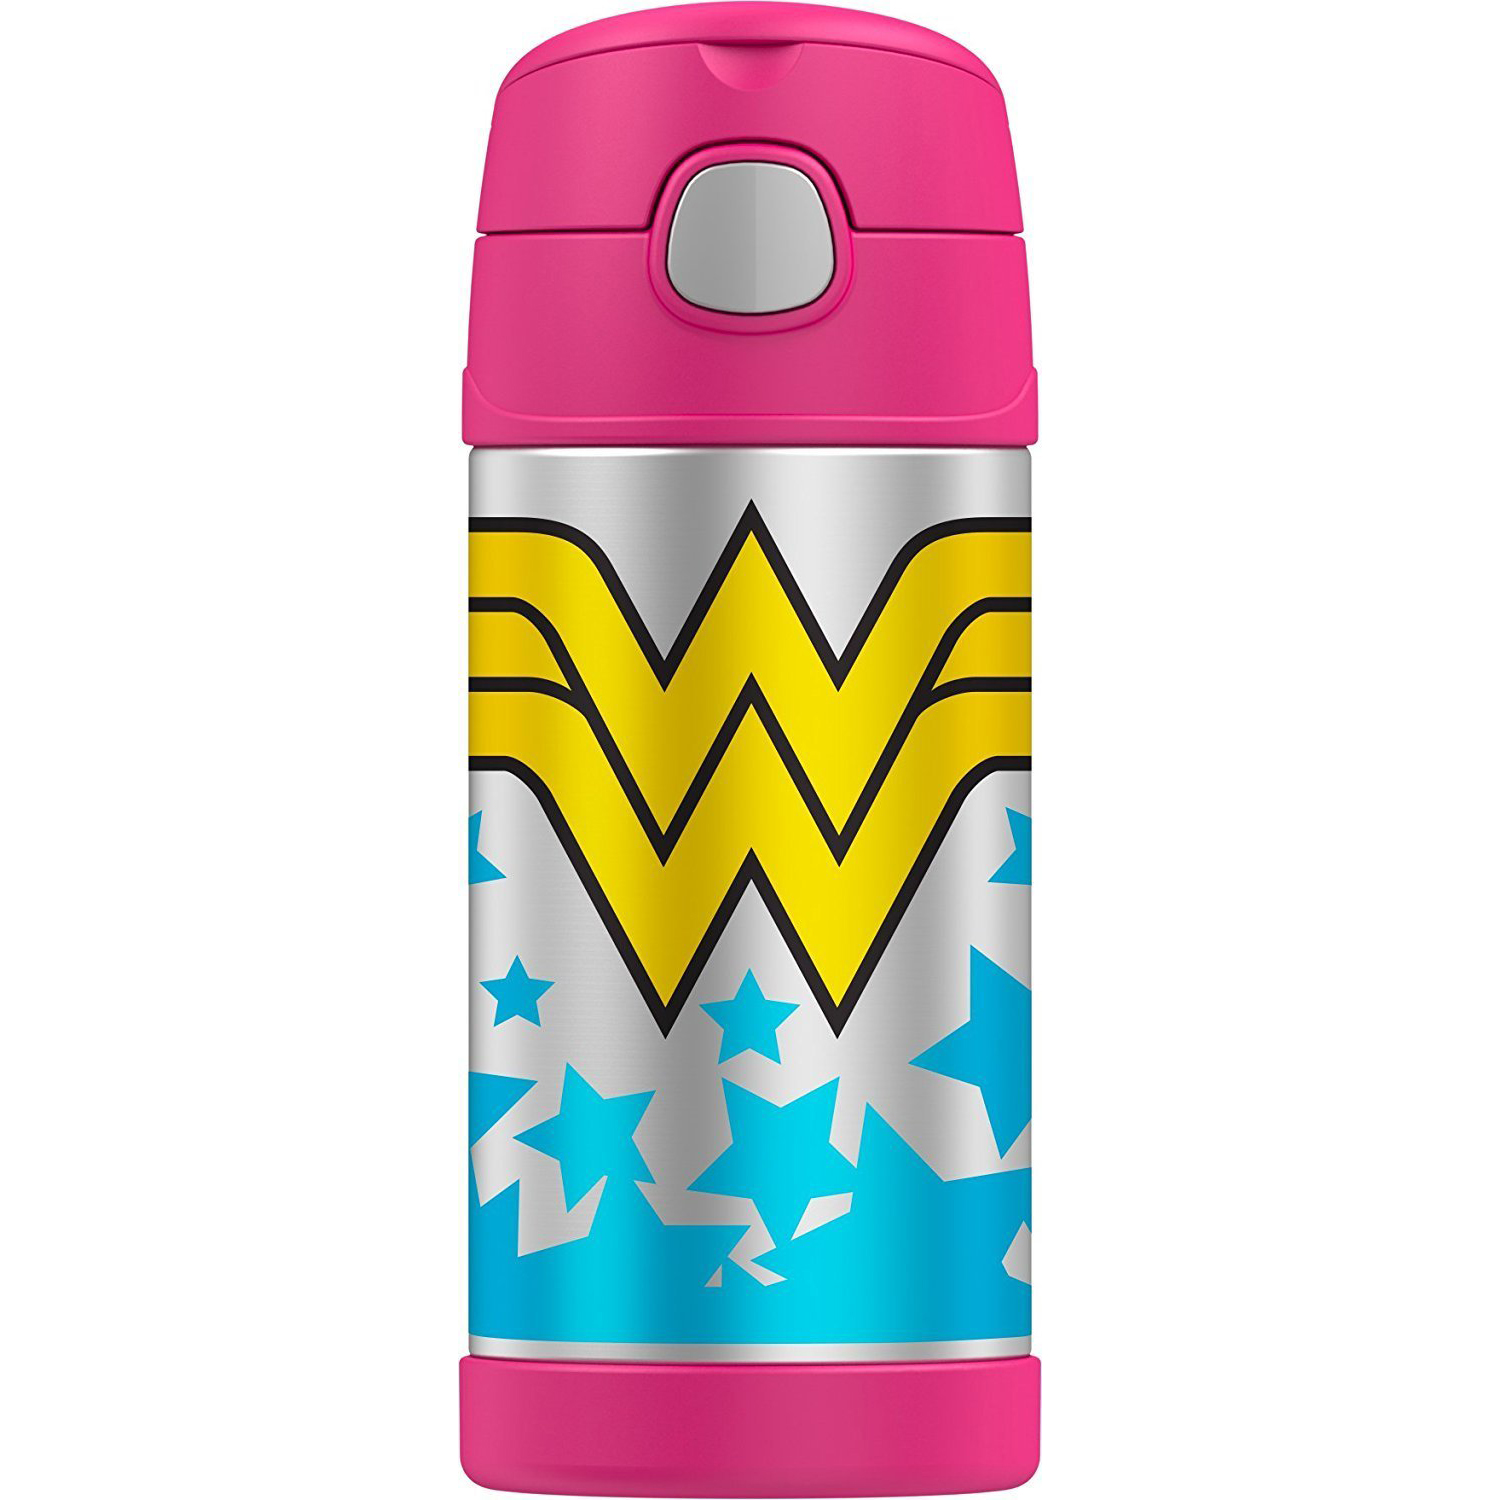 Thermos FUNtainer 12-ounce Vacuum Insulated Stainless Steel Bottle (Wonder Woman)